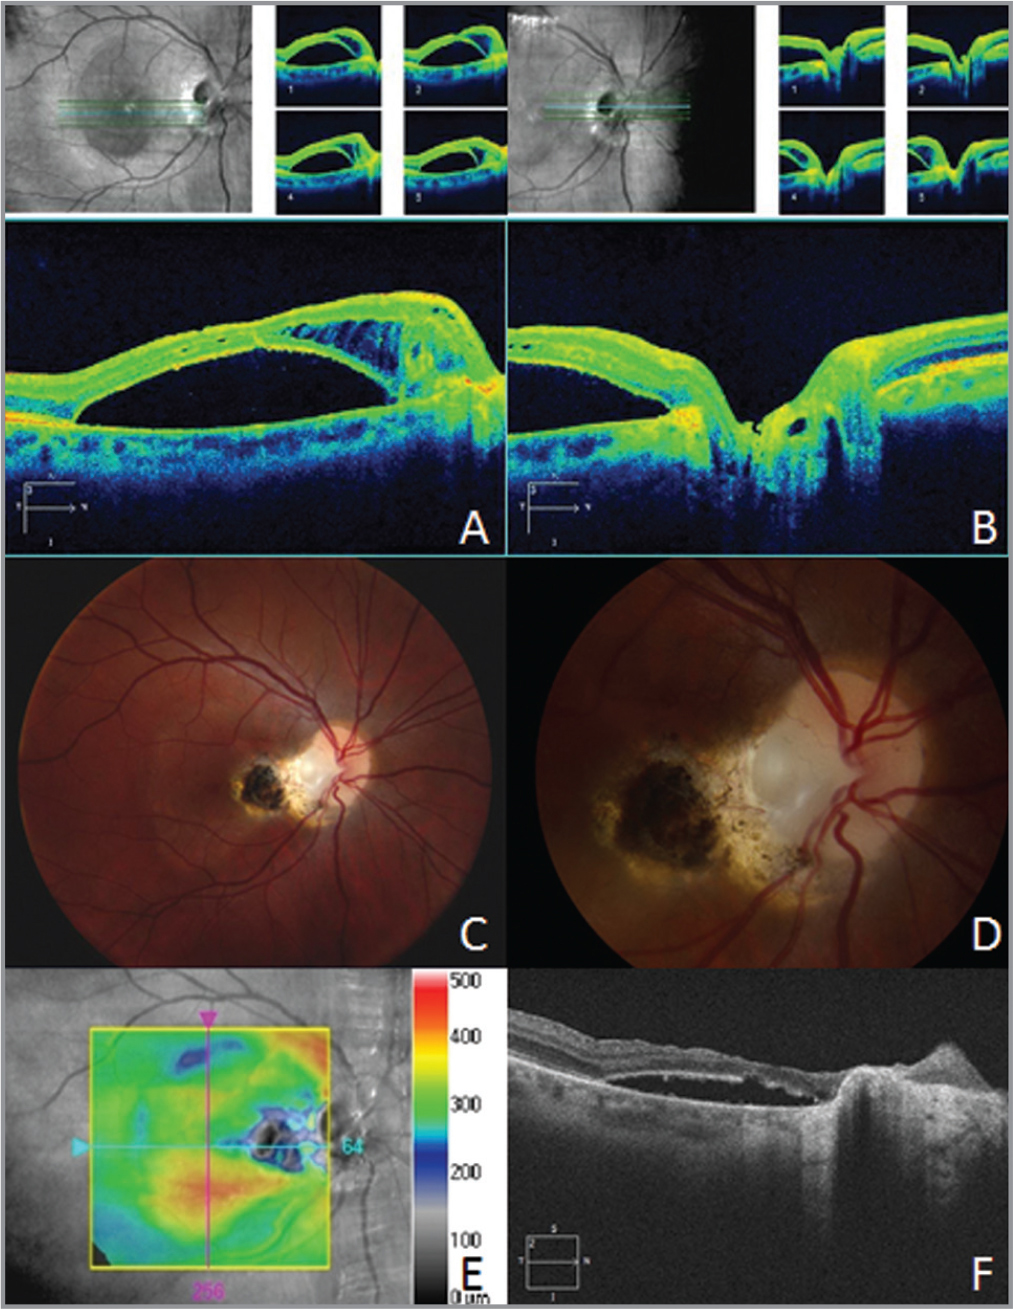 Multimodal imaging of the optic disc pit after removal of the glial plug. (A) Optical coherence tomography (OCT) of the retina and through the optic nerve (B) show persistent subretinal and intraretinal fluid. (C, D) Color fundus photographs show peripapillary and macular scarring around sites of photocoagulation and the macular retinotomy. (E, F) OCT of the macula shows improvement in subretinal fluid and atrophy after the second surgery.